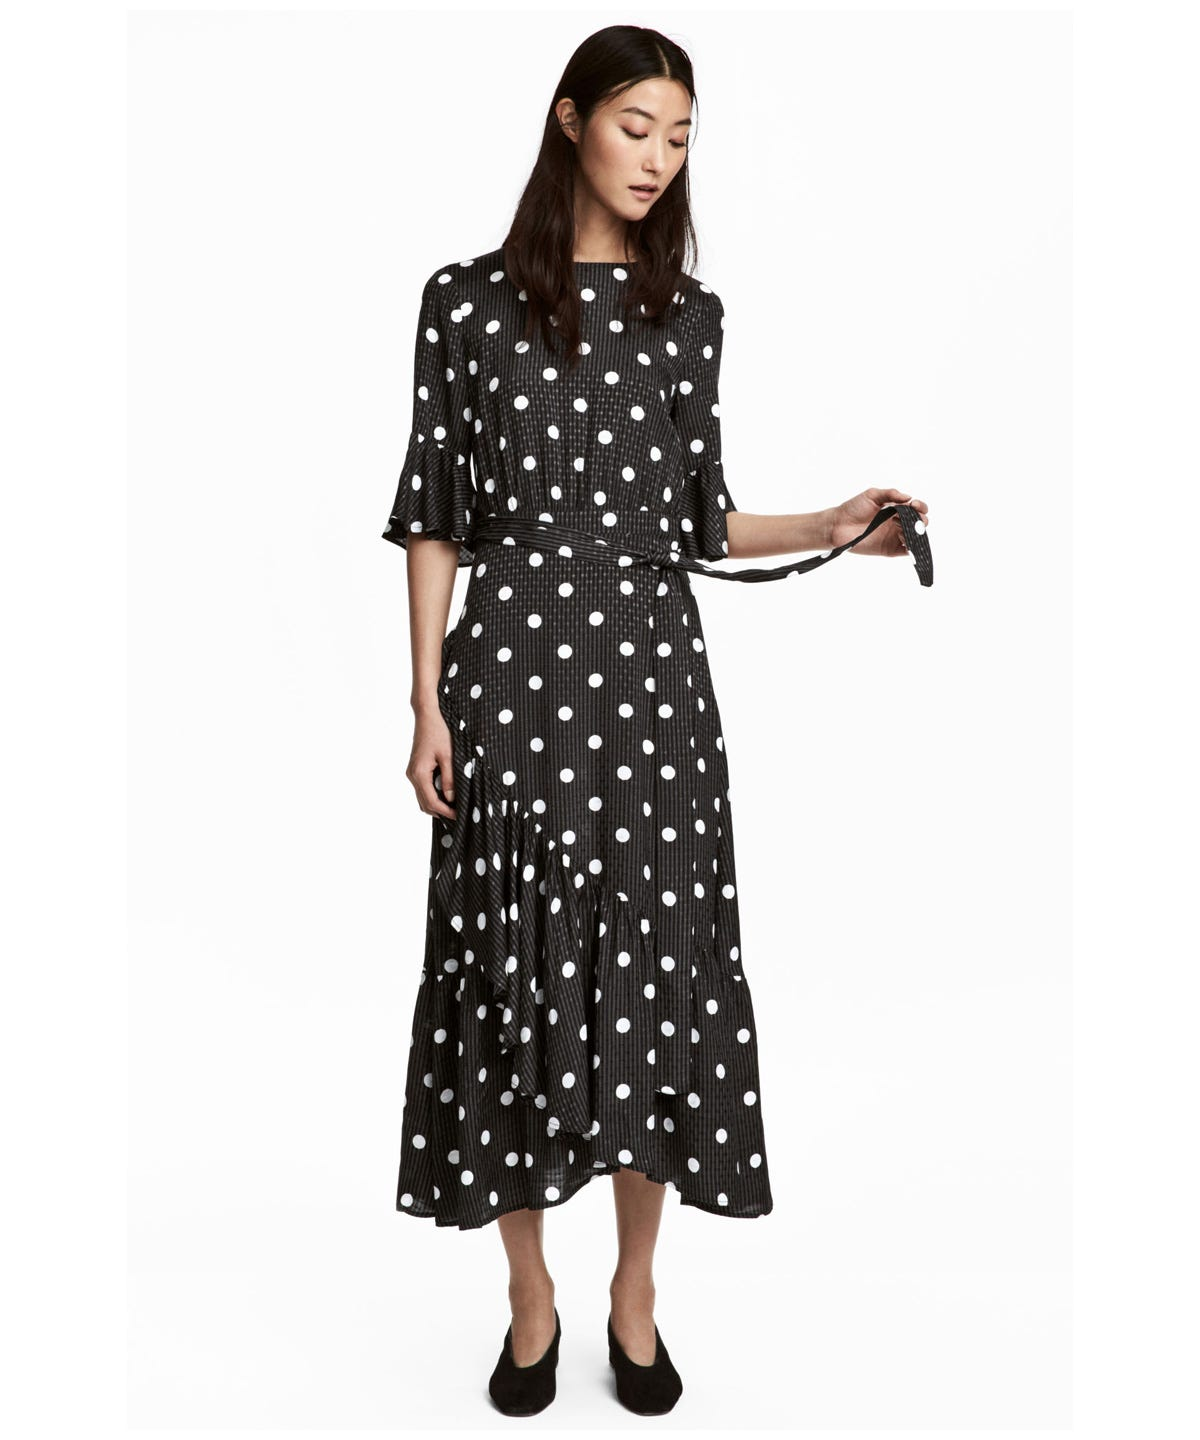 fcfedff93d6 Cute Ways To Wear The Polka Dot Trend Winter 2018